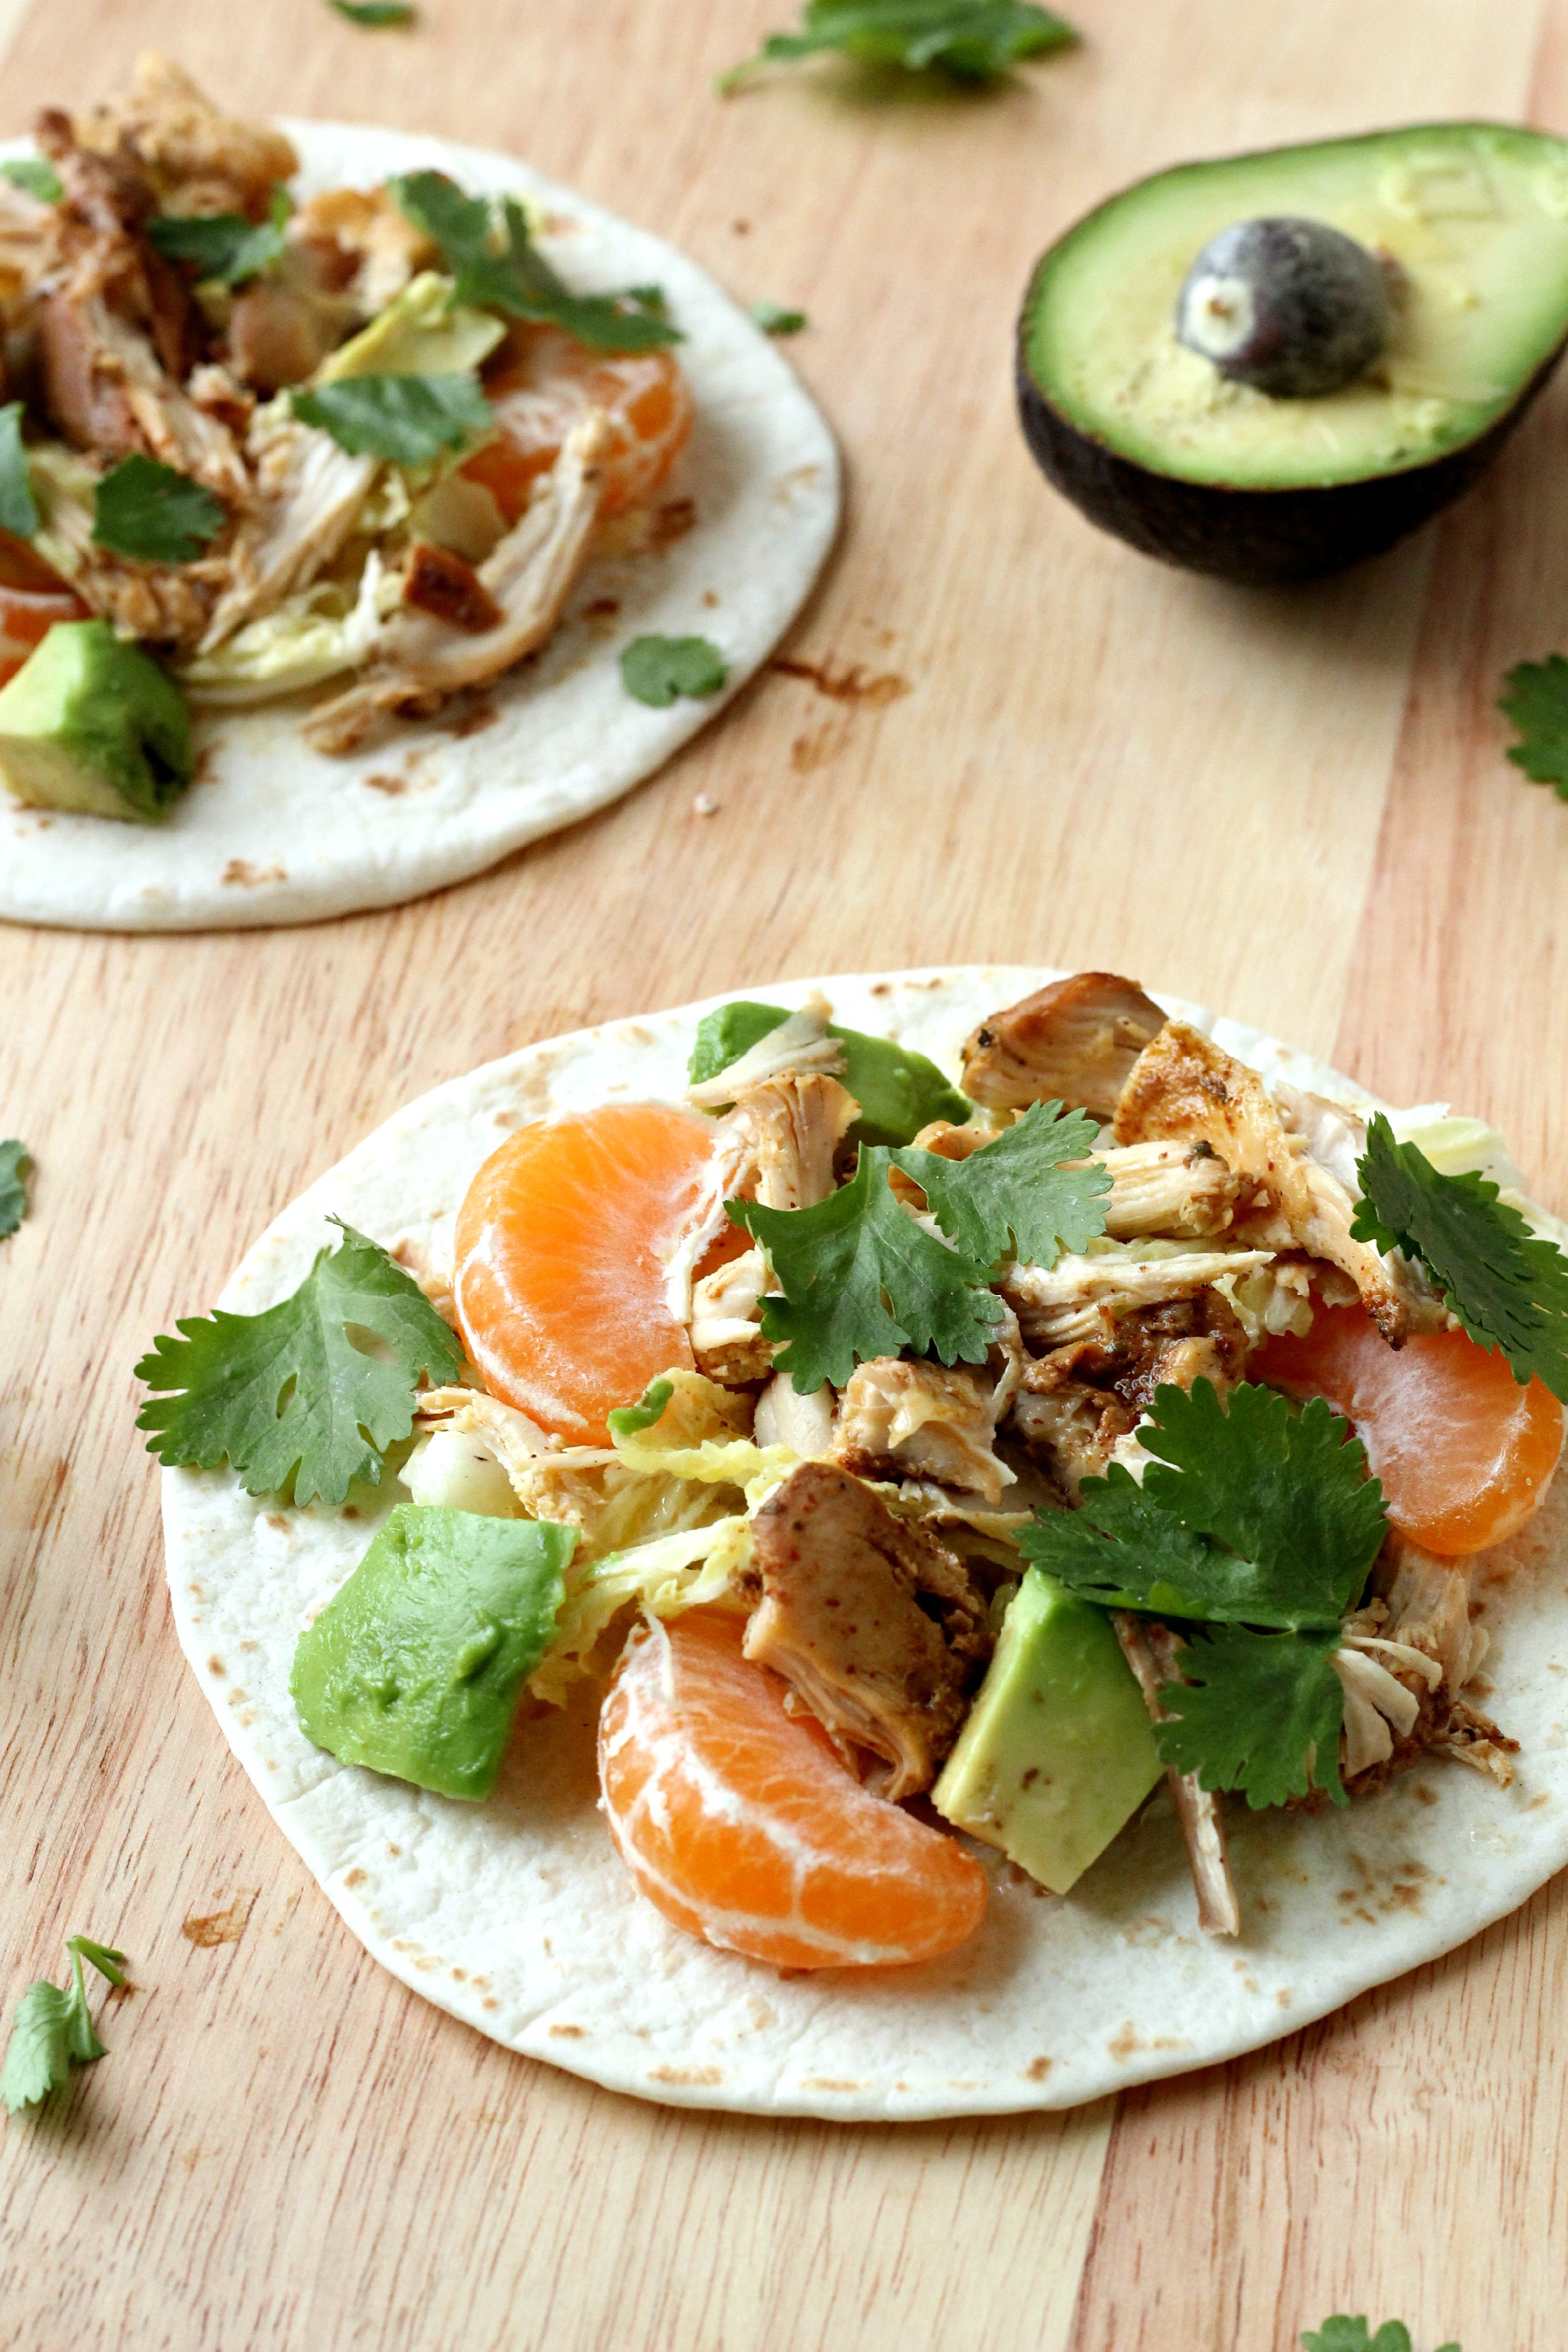 These Crispy Chicken Paleo Tacos are AMAZING! A perfect weeknight meal.